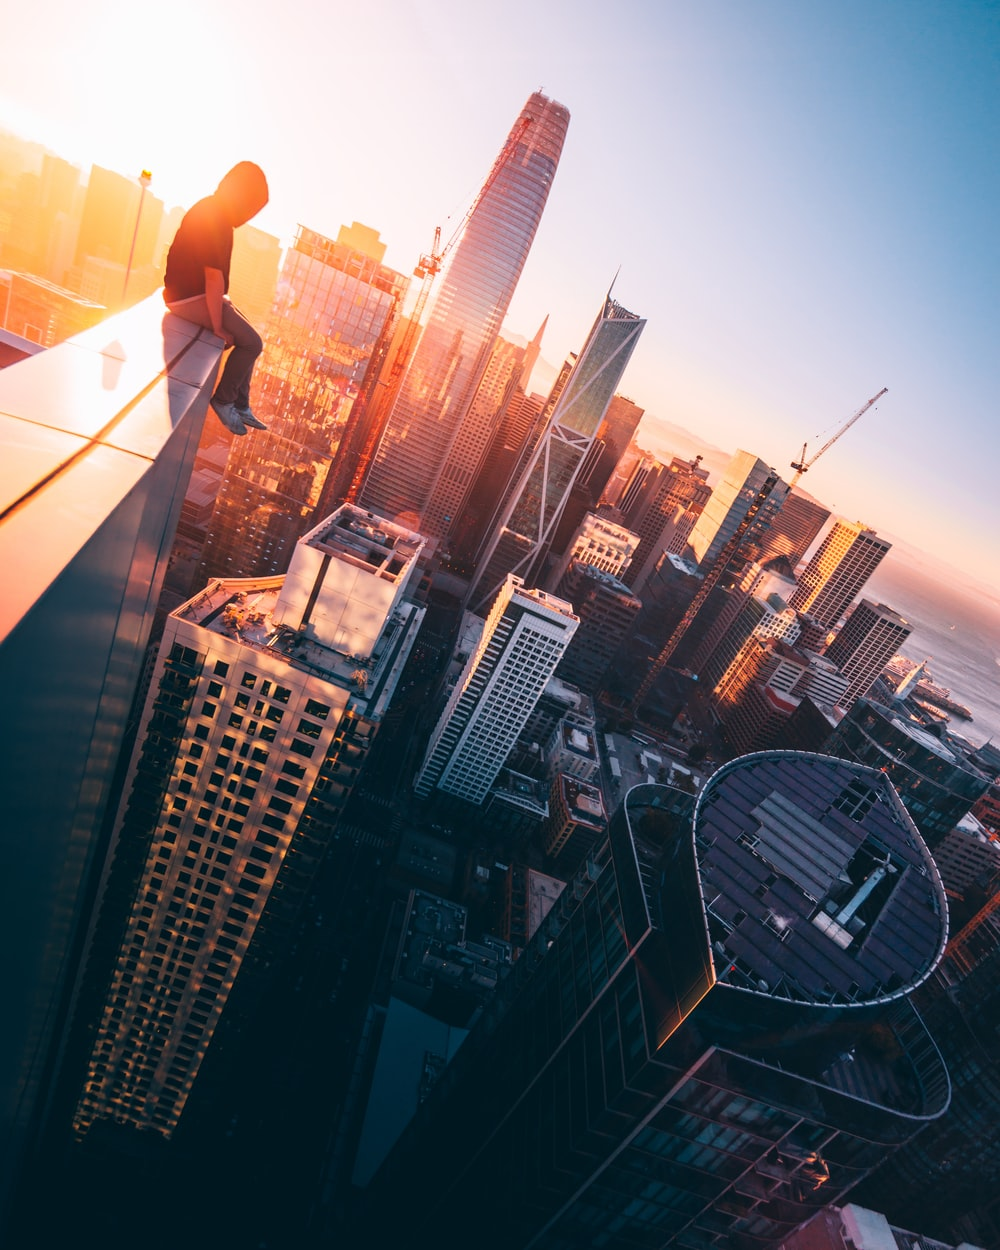 person sitting on top of building during daytime